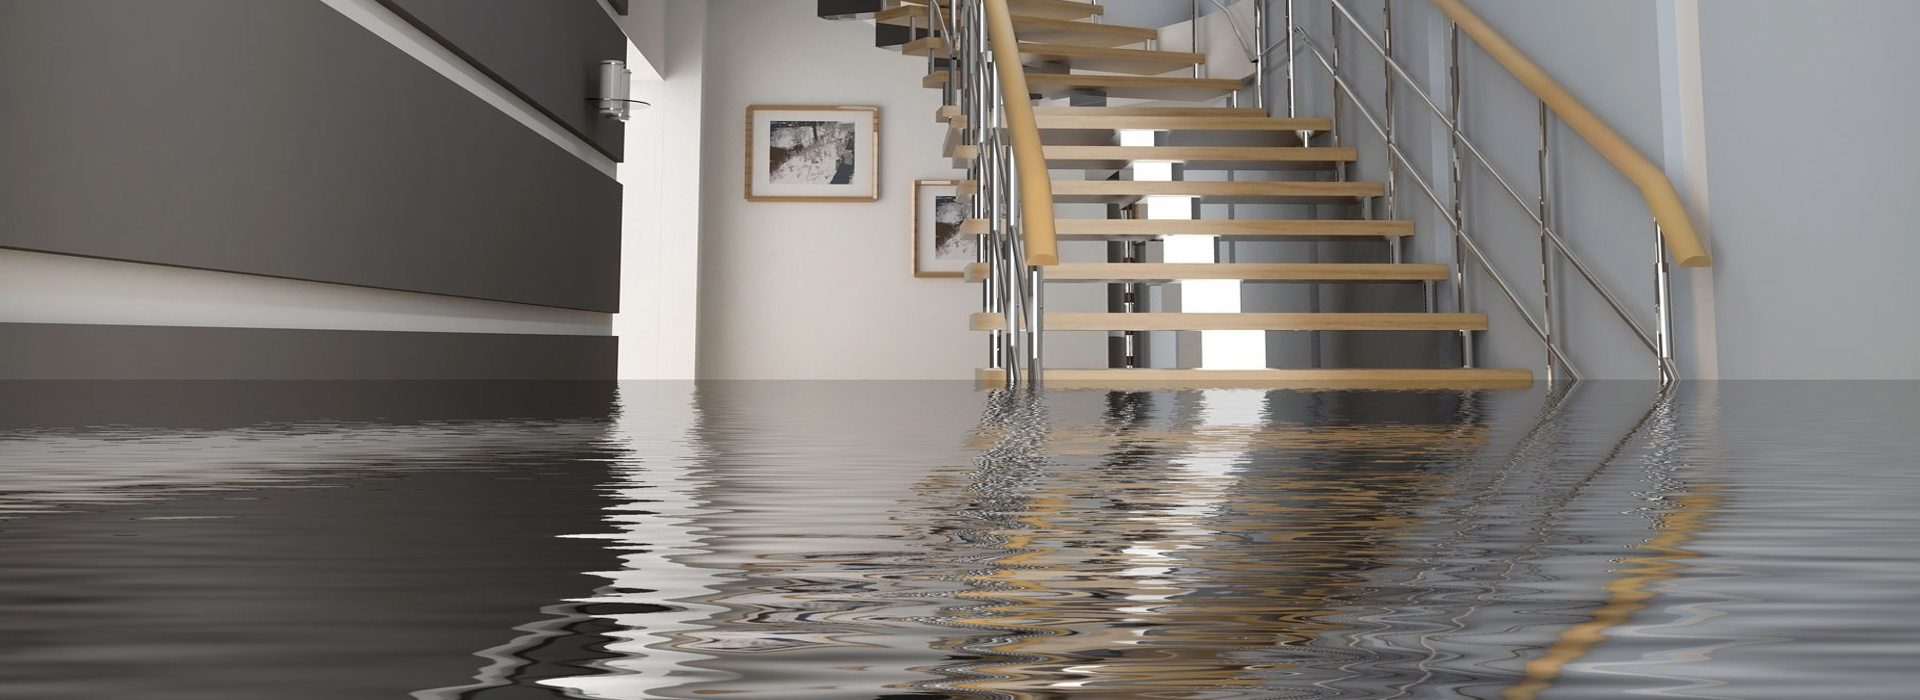 Stairs_water